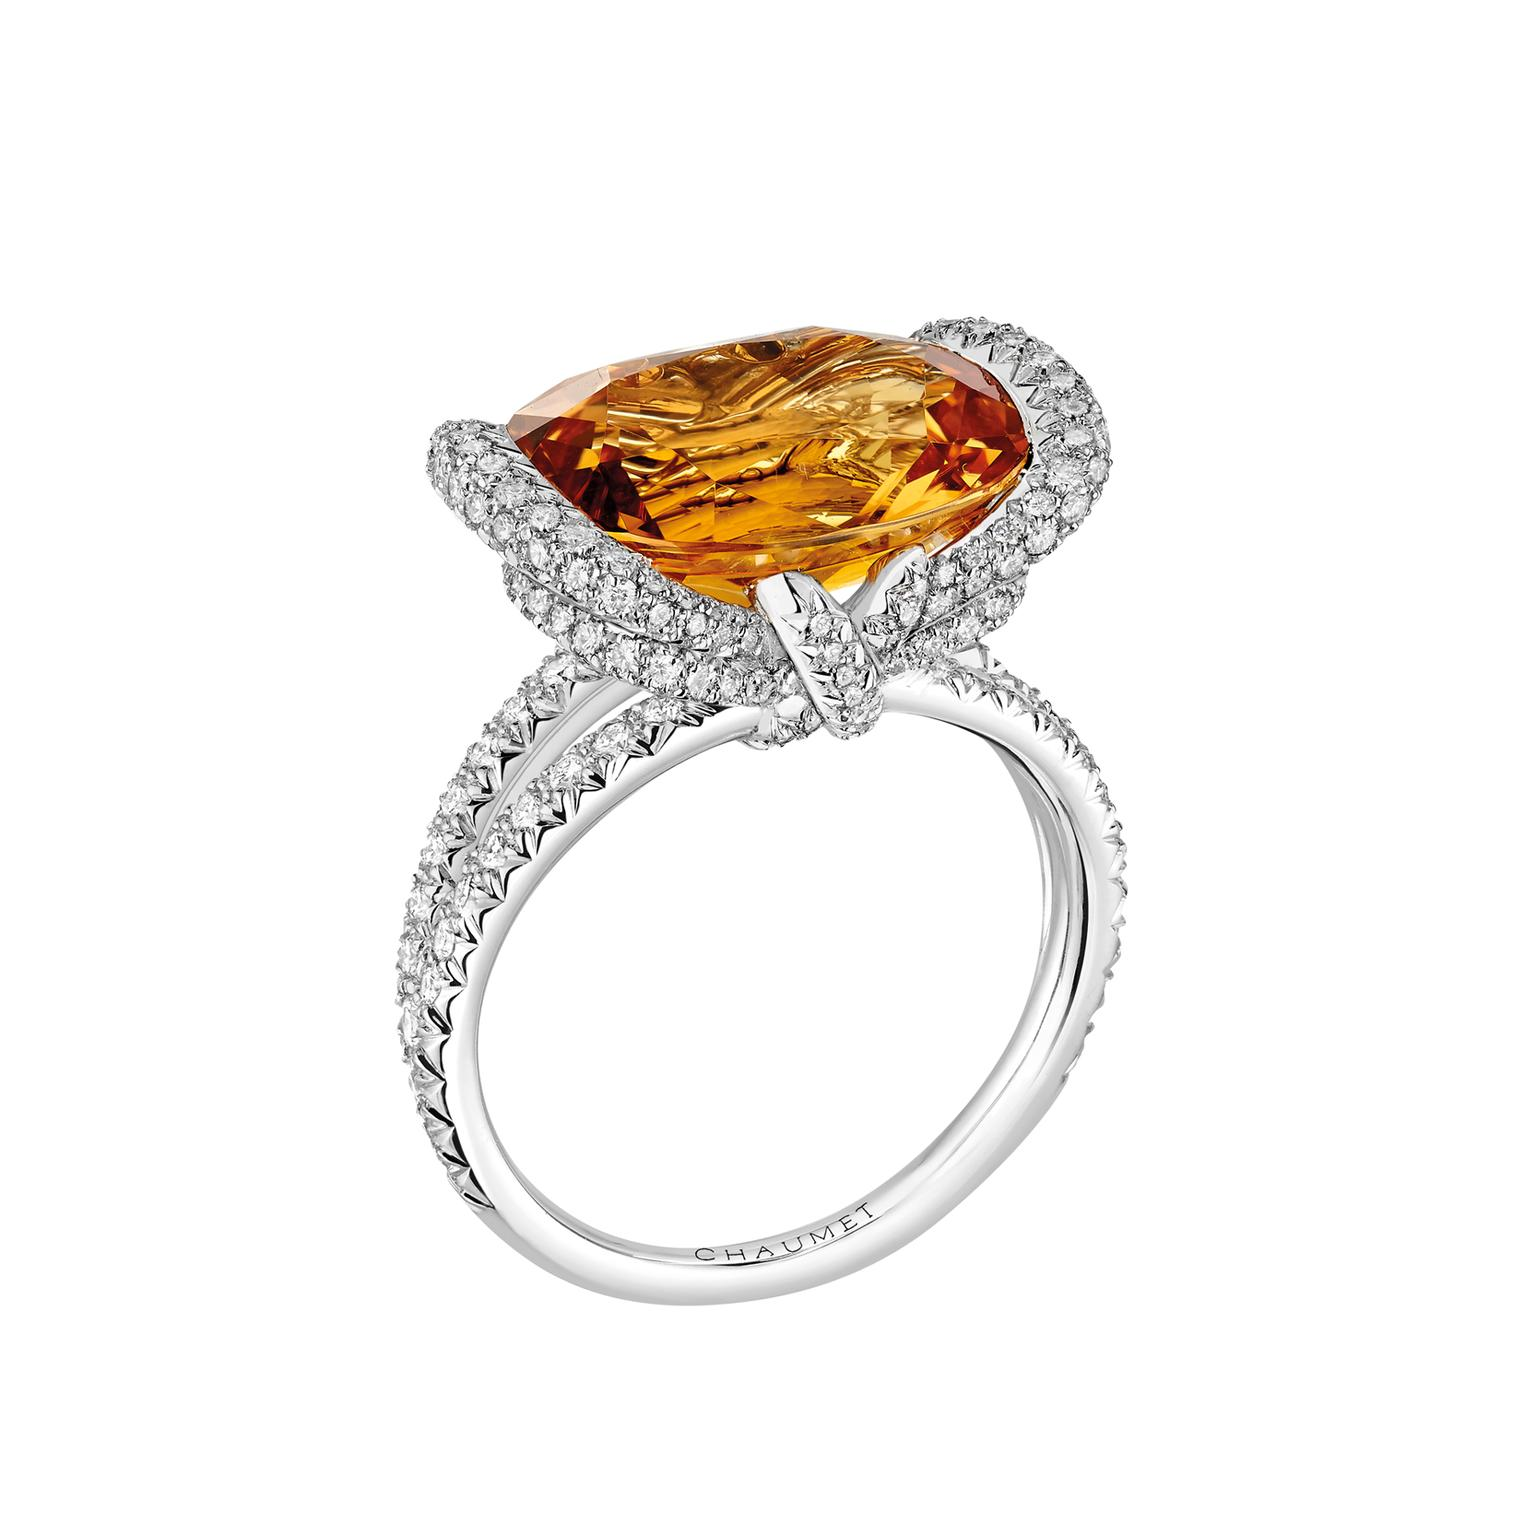 Chaumet Liens d'Amour topaz ring